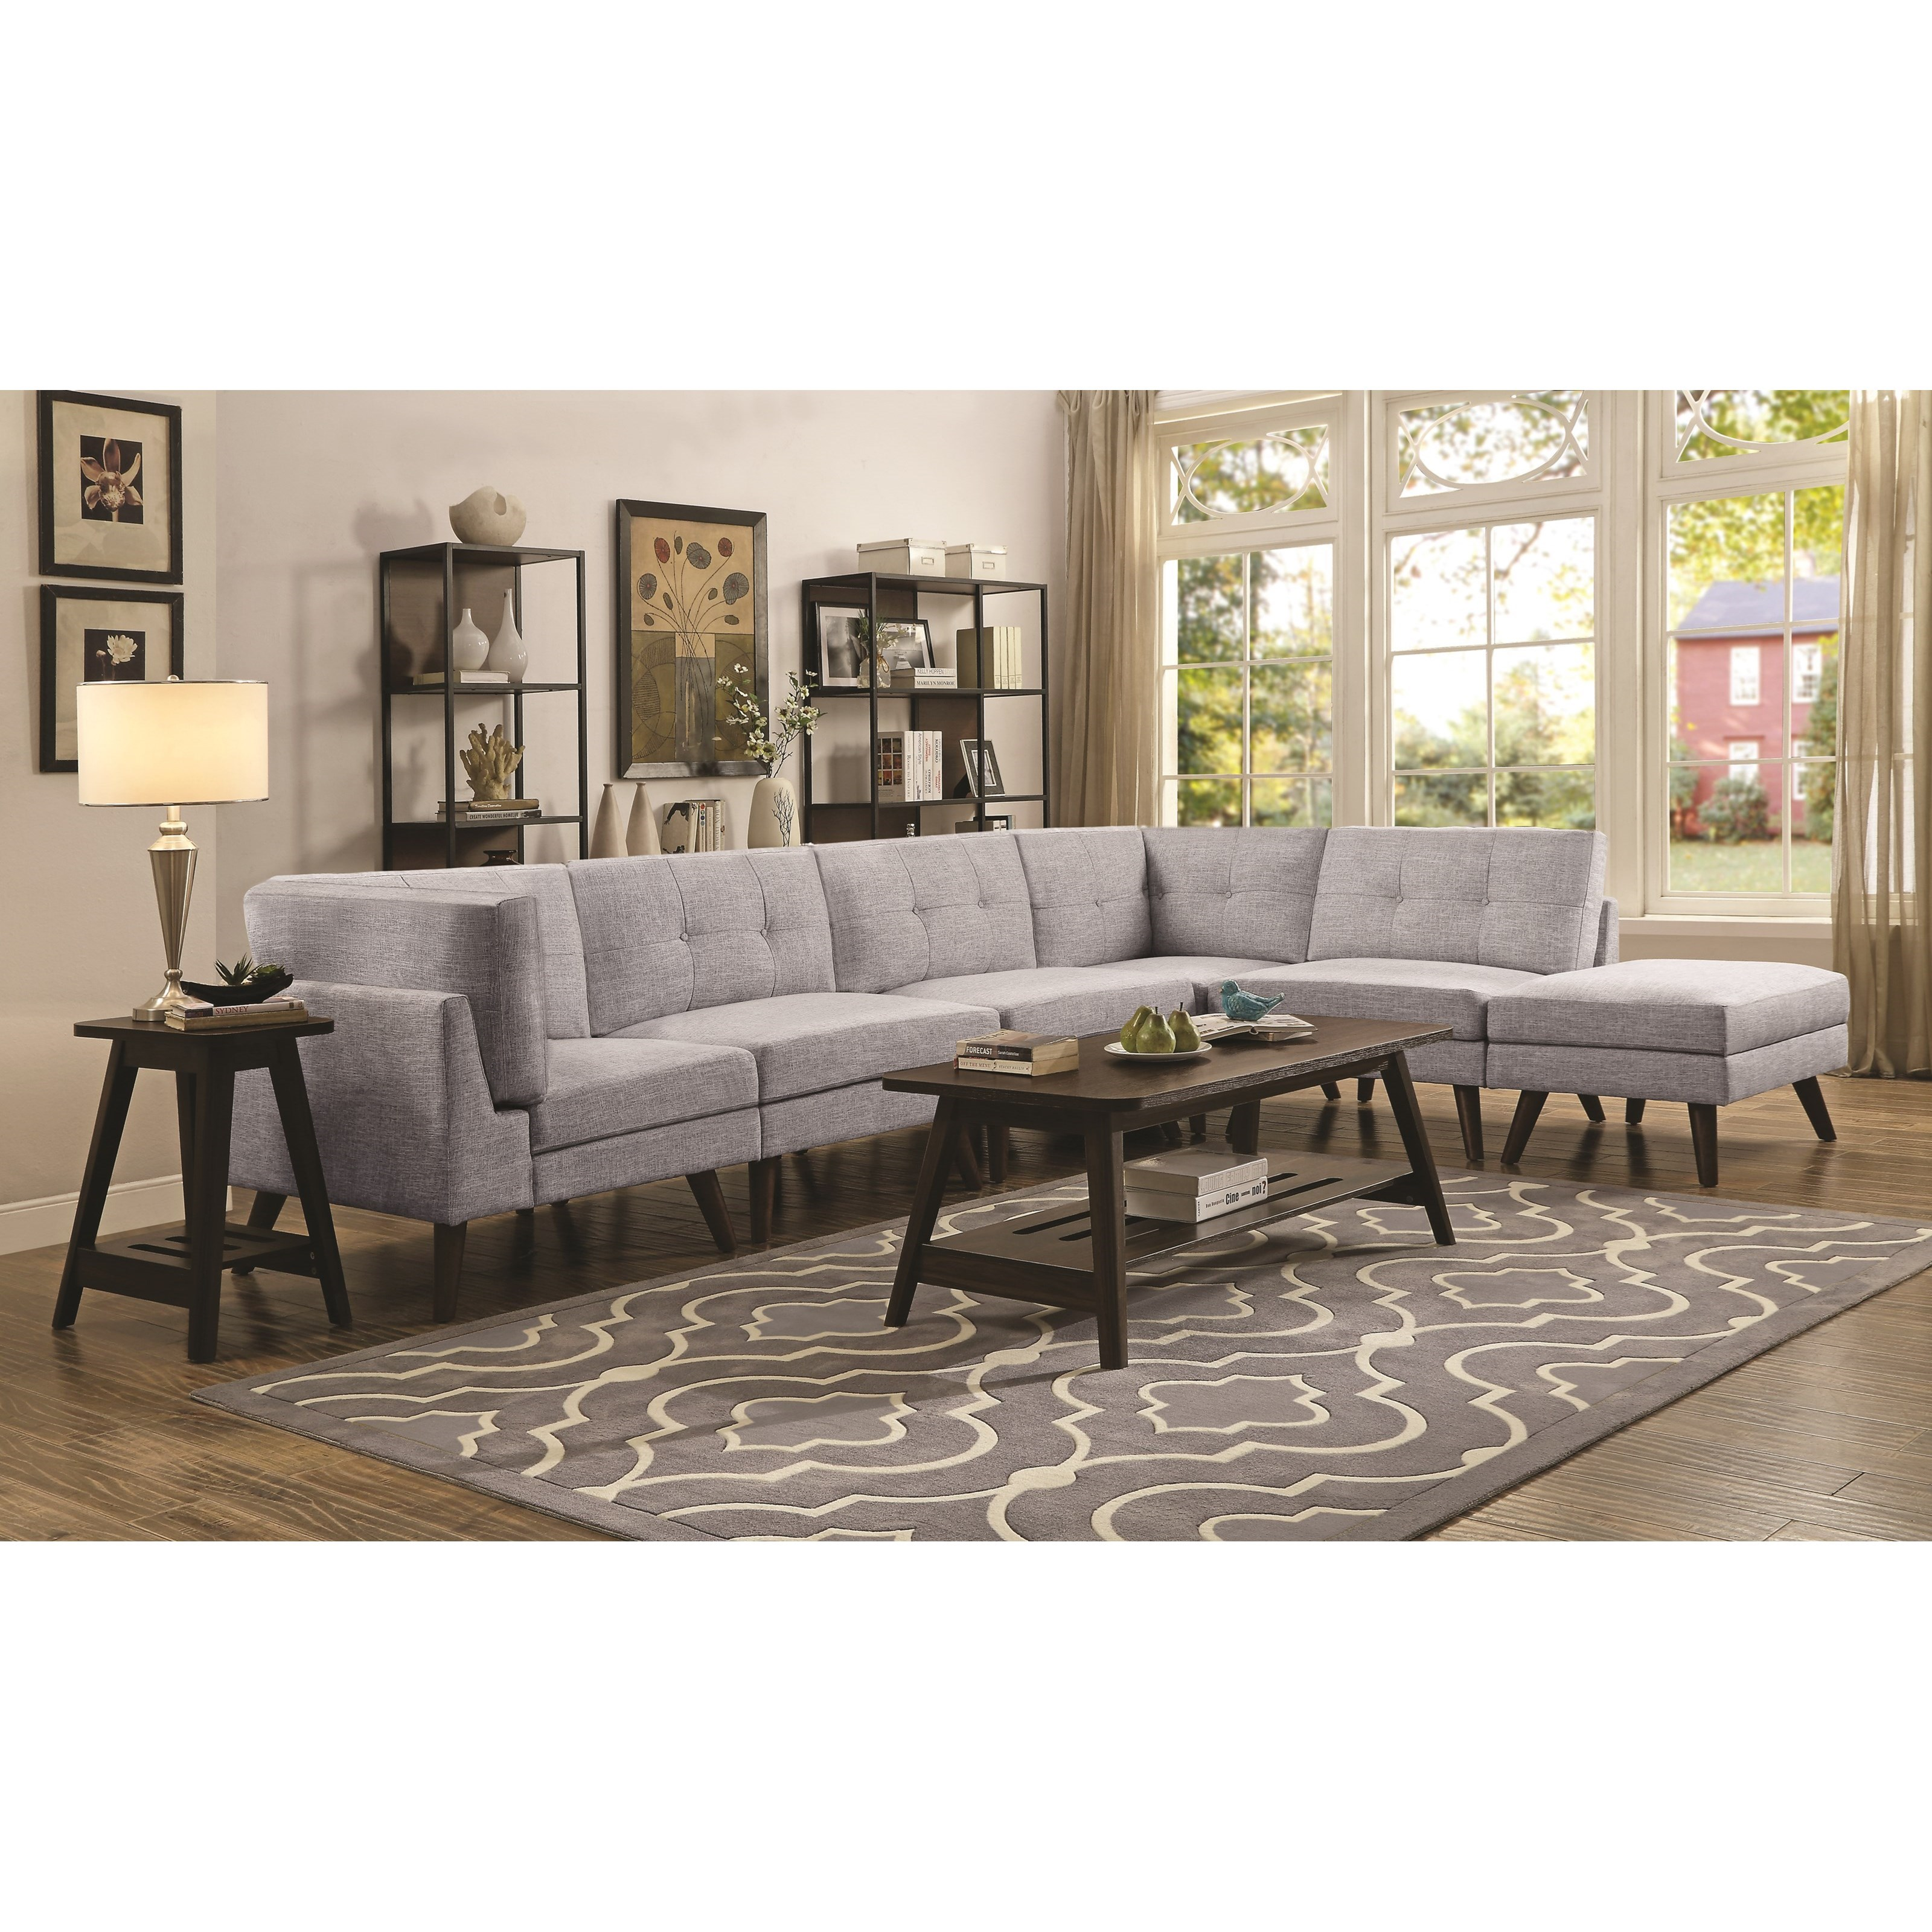 Churchill 4 Seat Sectional by Coaster at Lapeer Furniture & Mattress Center